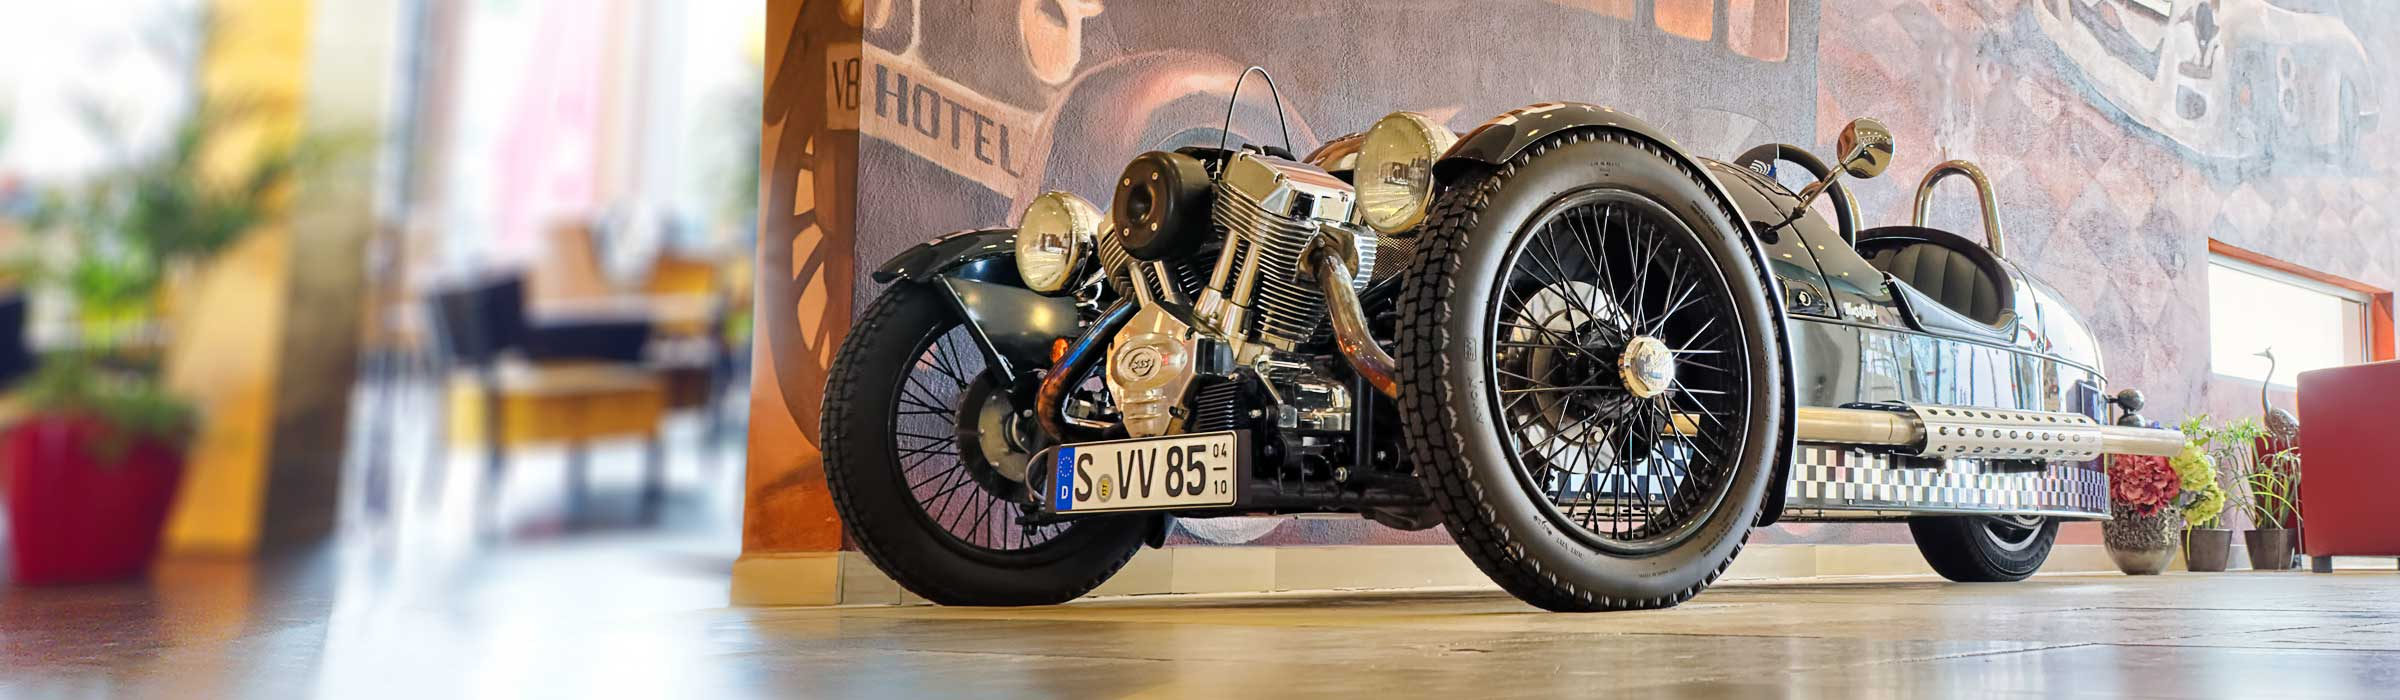 MORGAN THREE WHEELER Lobby V8 Hotel Themenhotel Motorworld Stuttgart